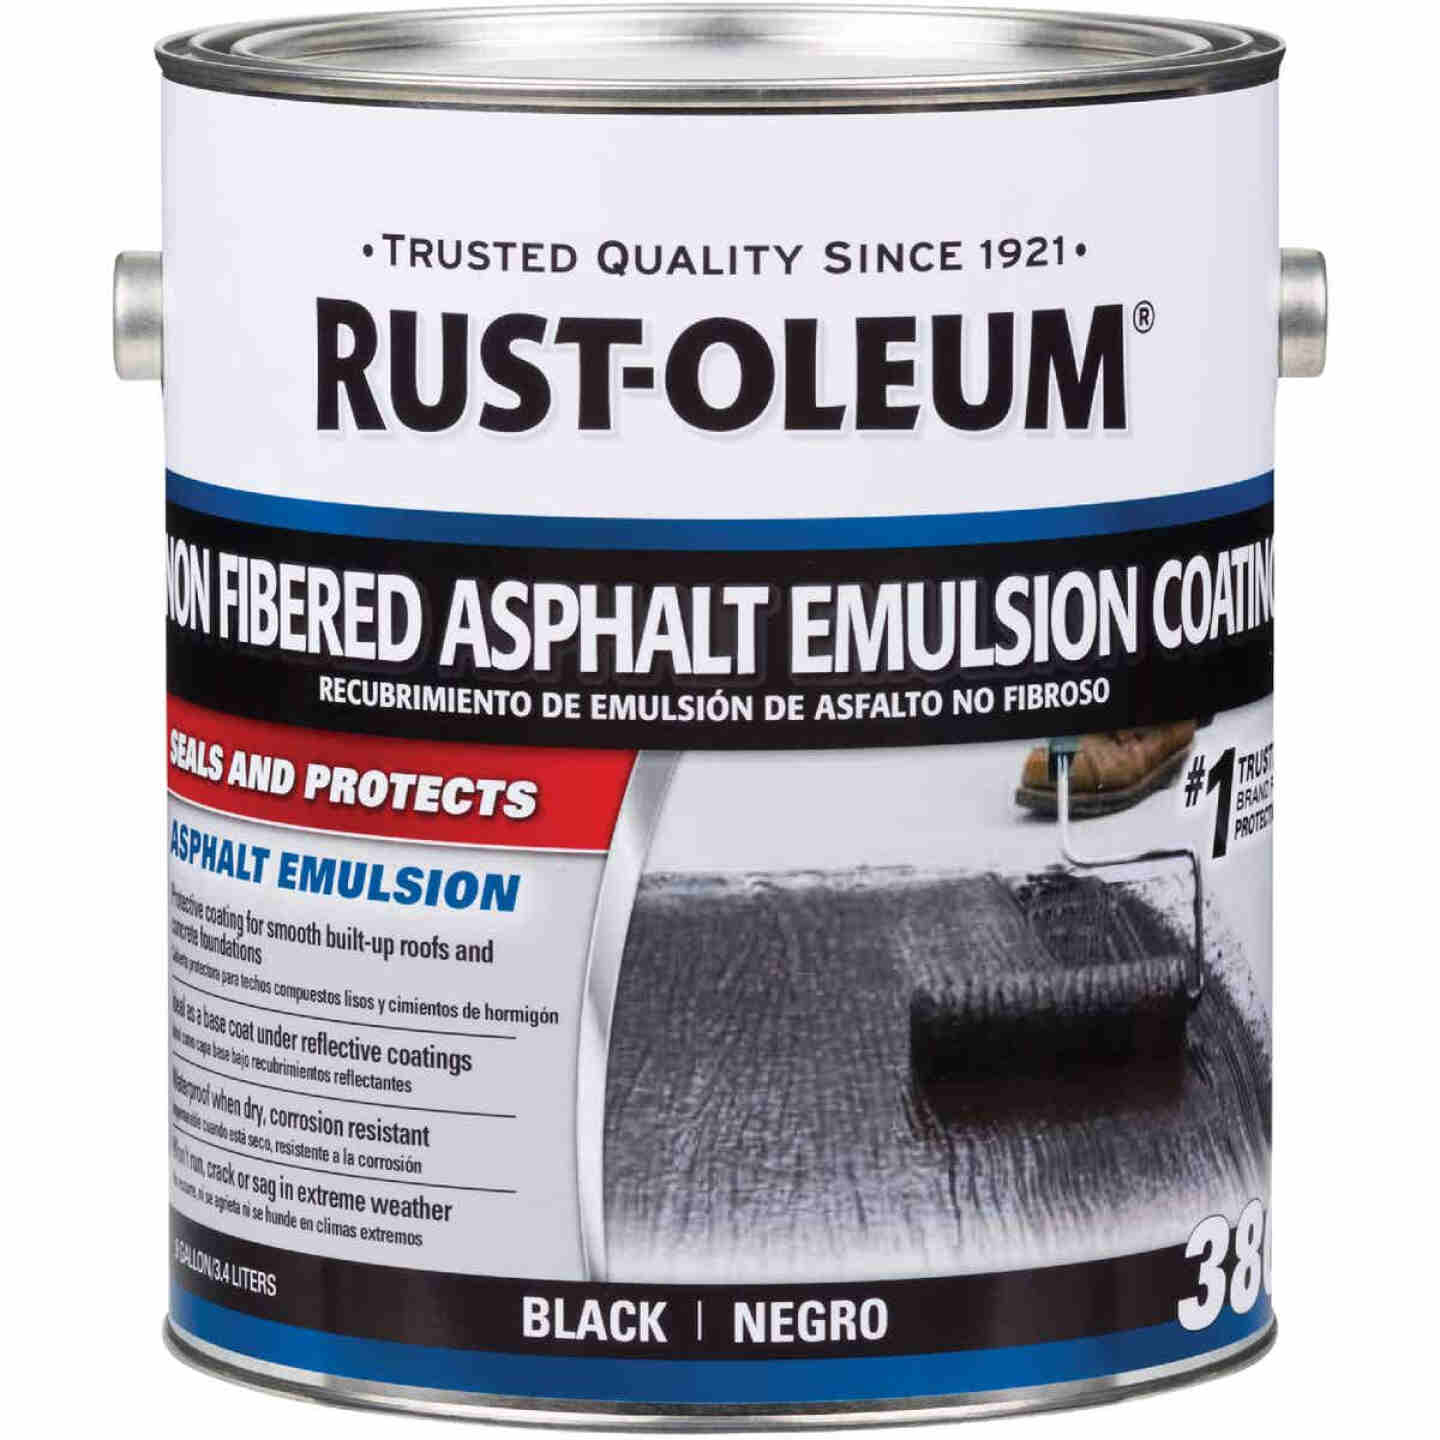 Rust-Oleum 380 1 Gal. Non-Fibered Asphalt Emulsion Coating Image 1